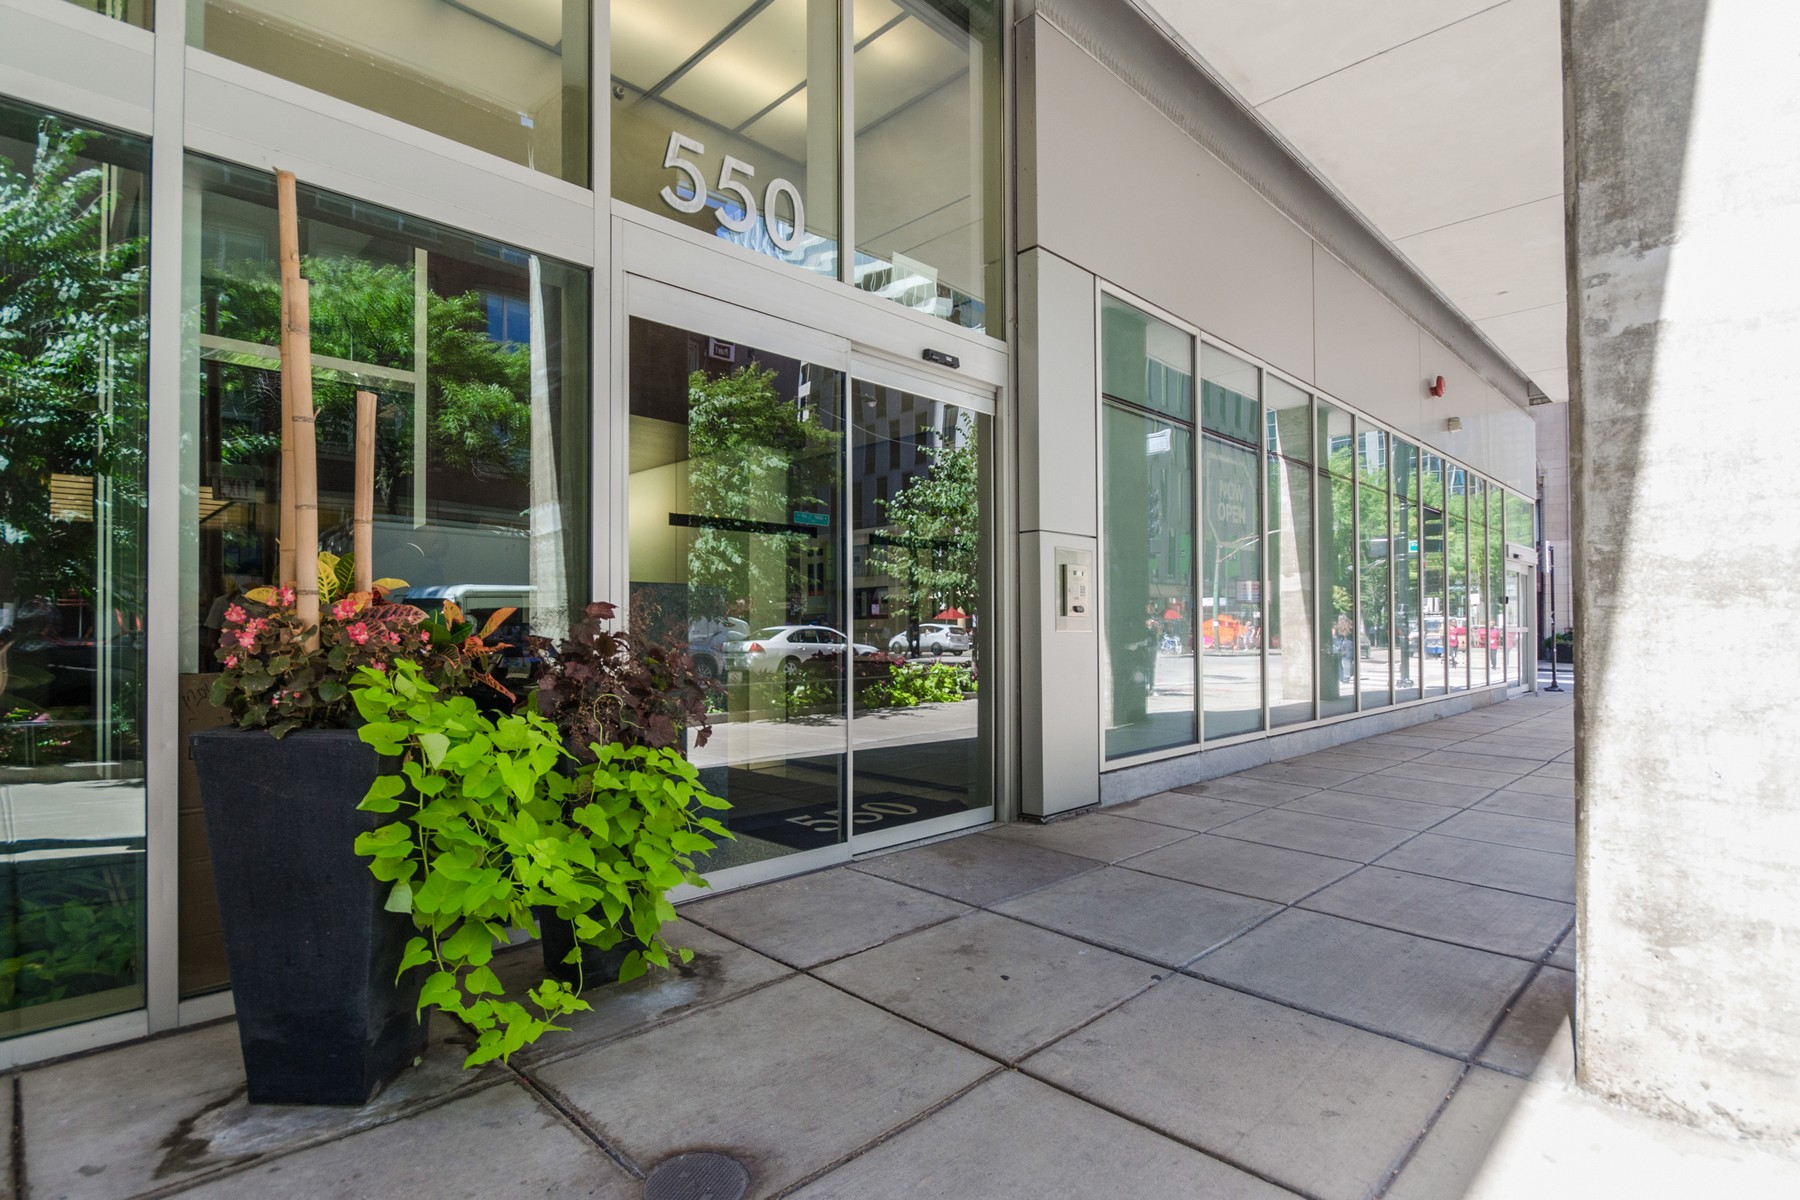 Condominium for Sale at Sanctuary Retreat 550 N St Clair Street Unit 2301 Near North Side, Chicago, Illinois, 60611 United States